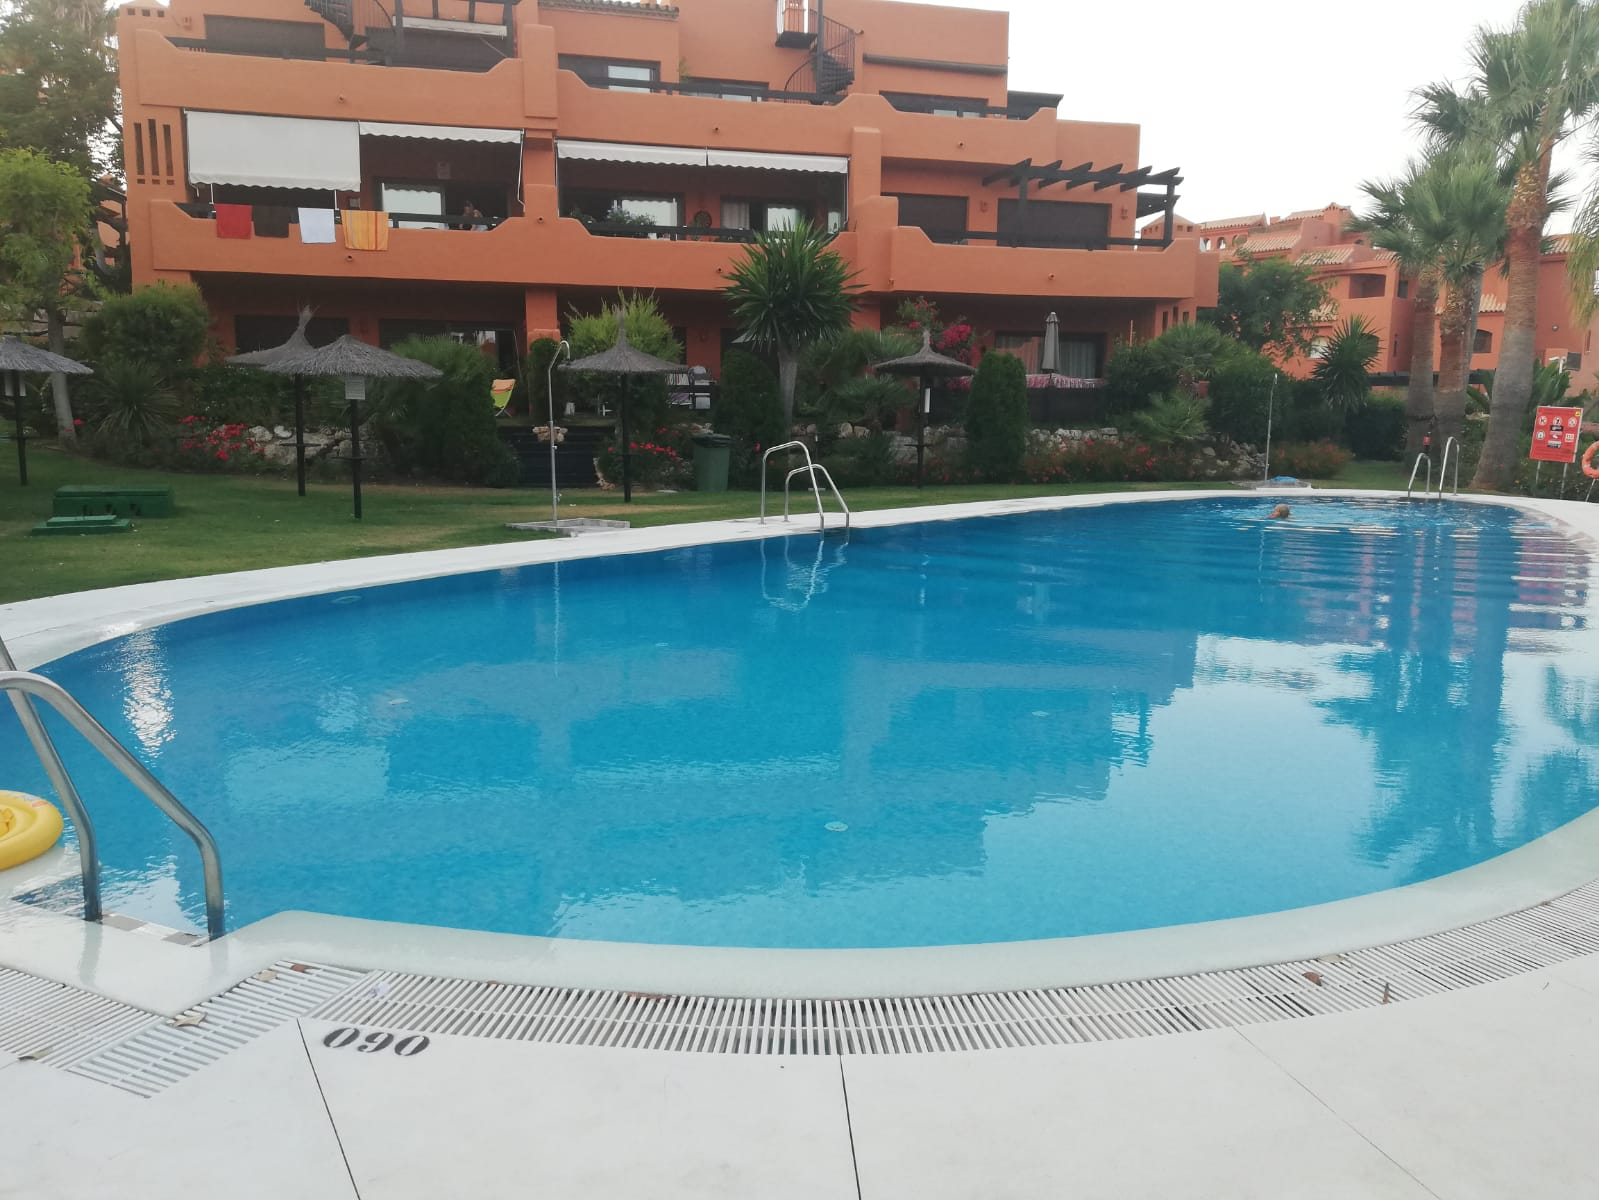 2 bedroom apartment for sale in Costa Galera 200 meters from the beach - mibgroup.es